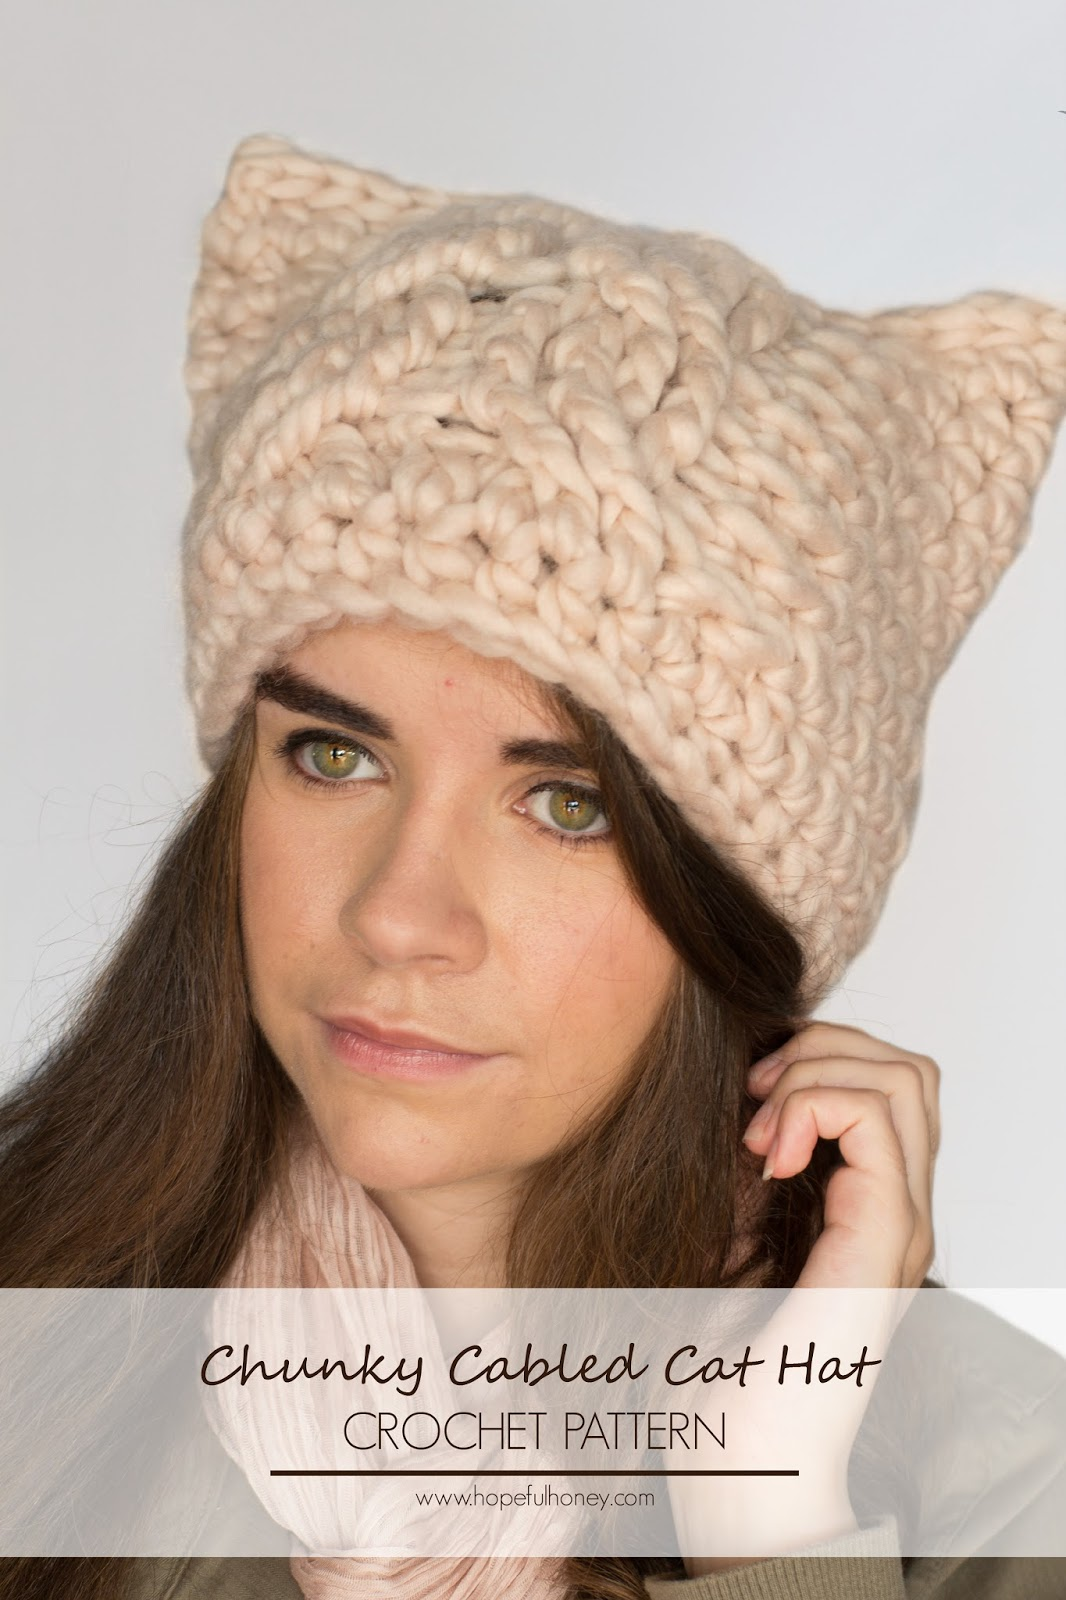 Crochet Caterpillar Hat Pattern : Hopeful Honey Craft, Crochet, Create: Chunky Cabled Cat ...